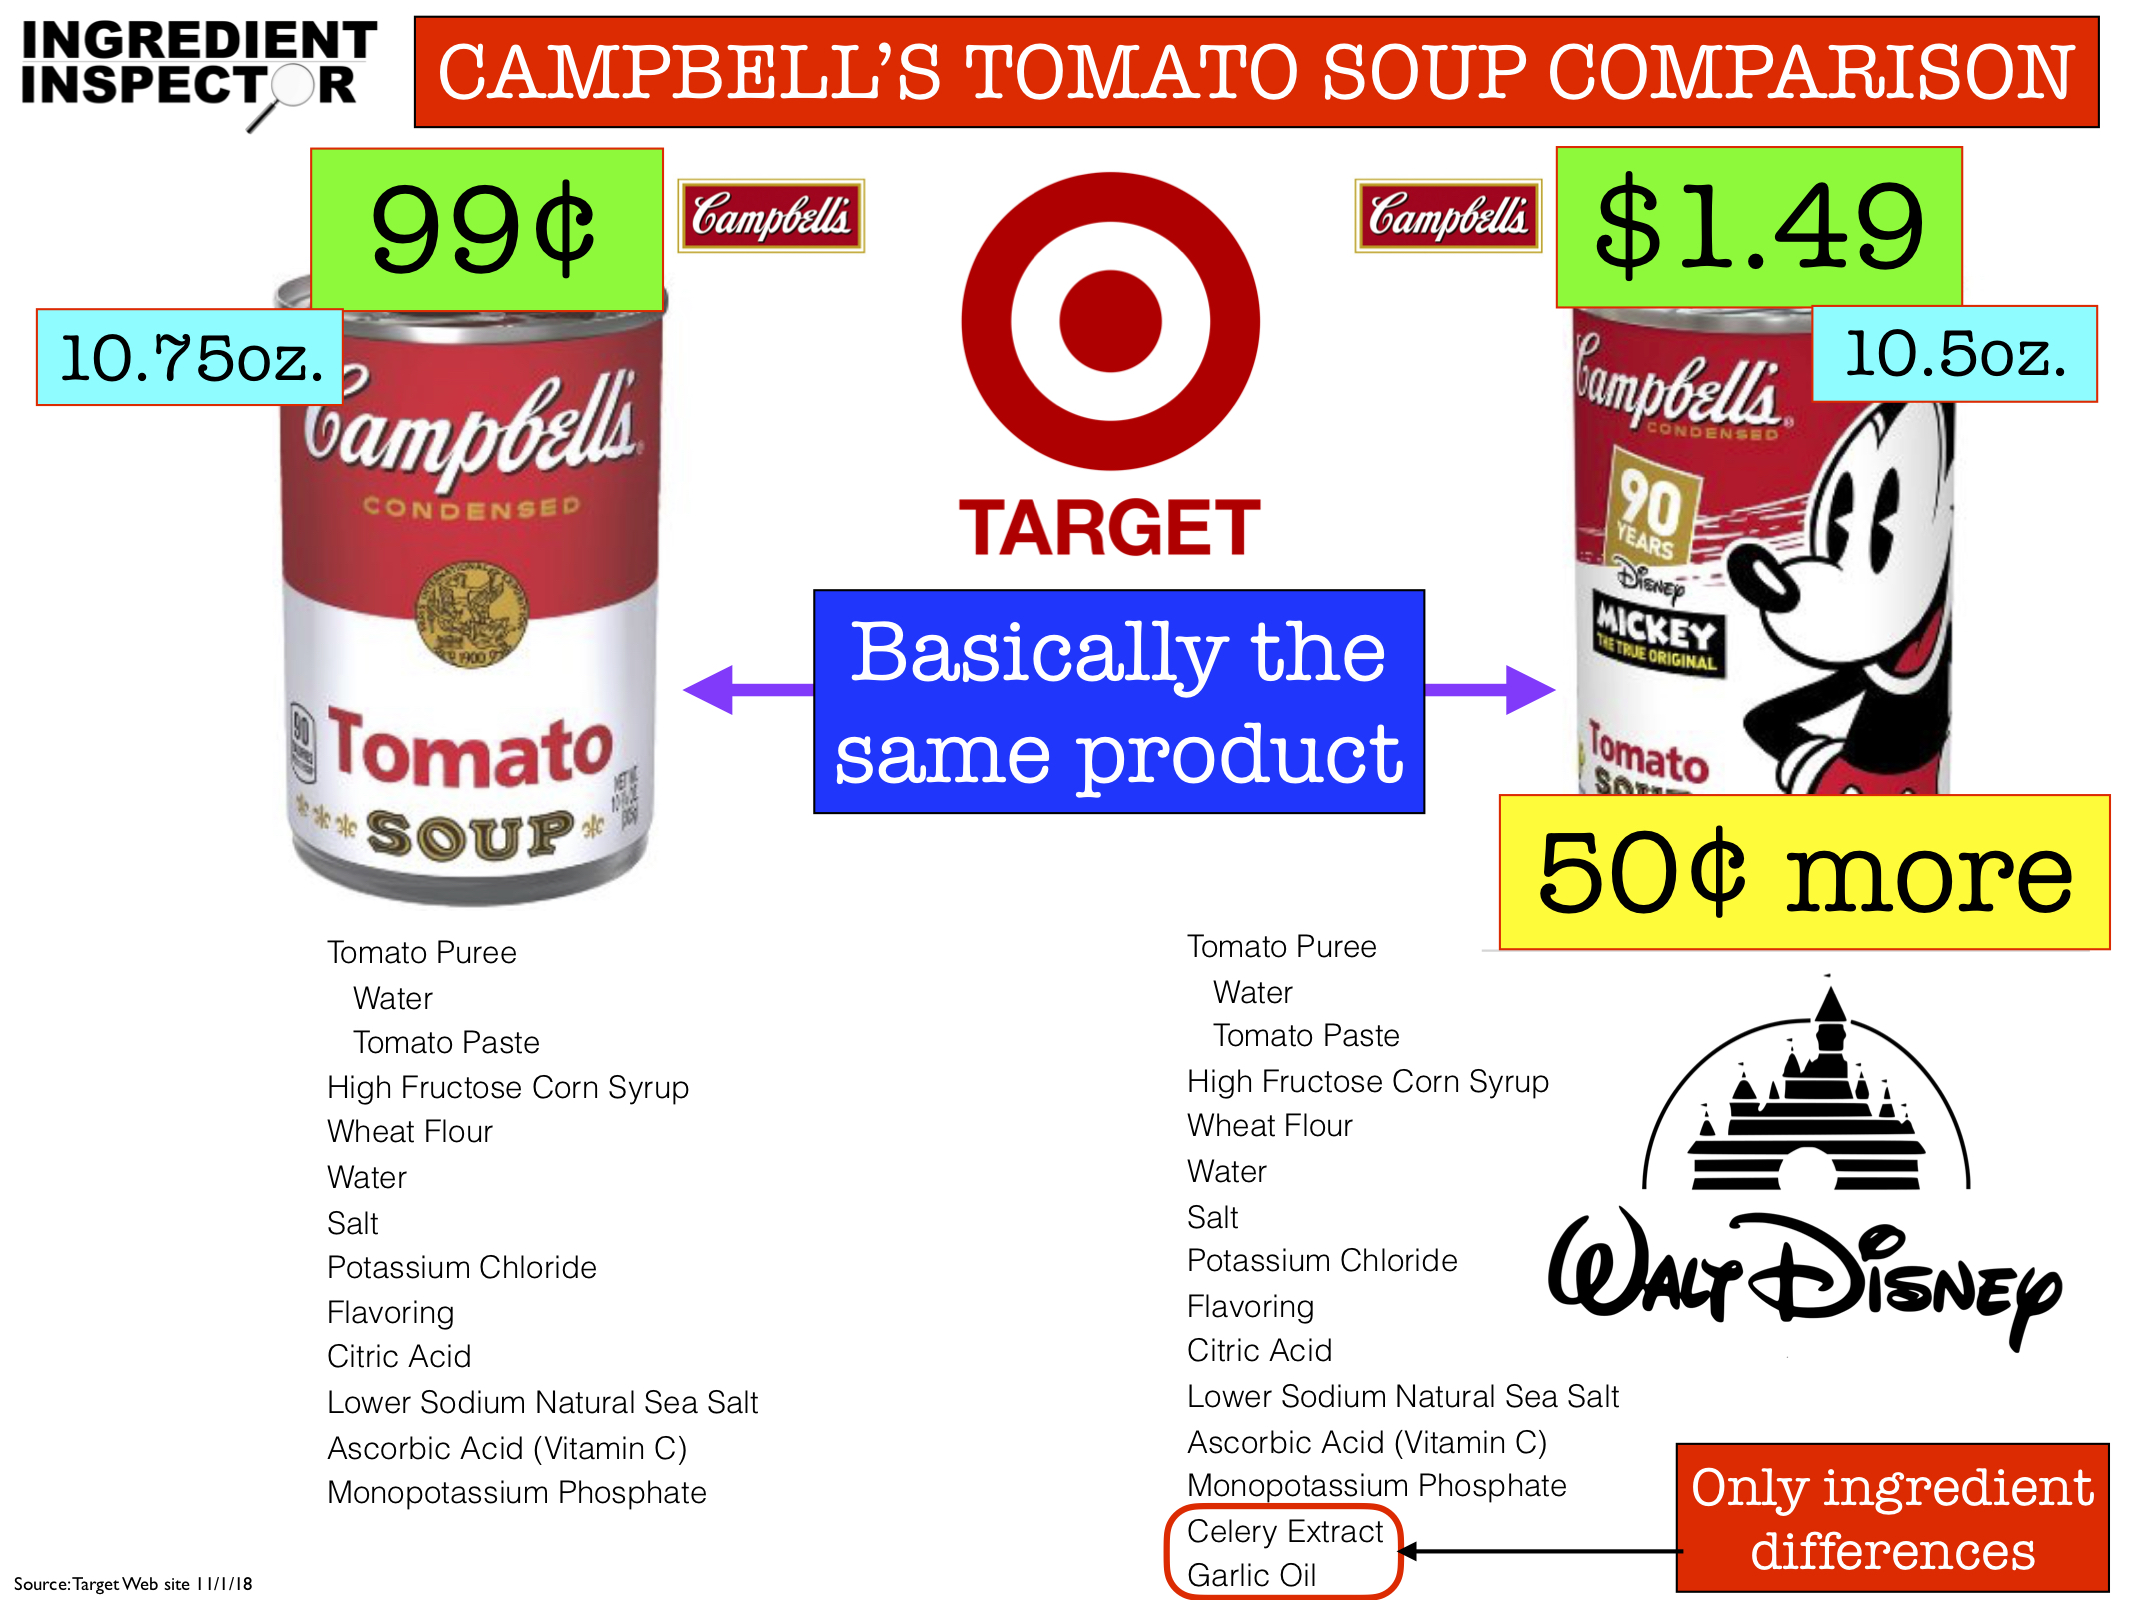 Ingredient Inspector Campbell's Disney Tomato Soup costs 50¢ more than basic Campbell's tomato soup even though they are basically the same product.jpg